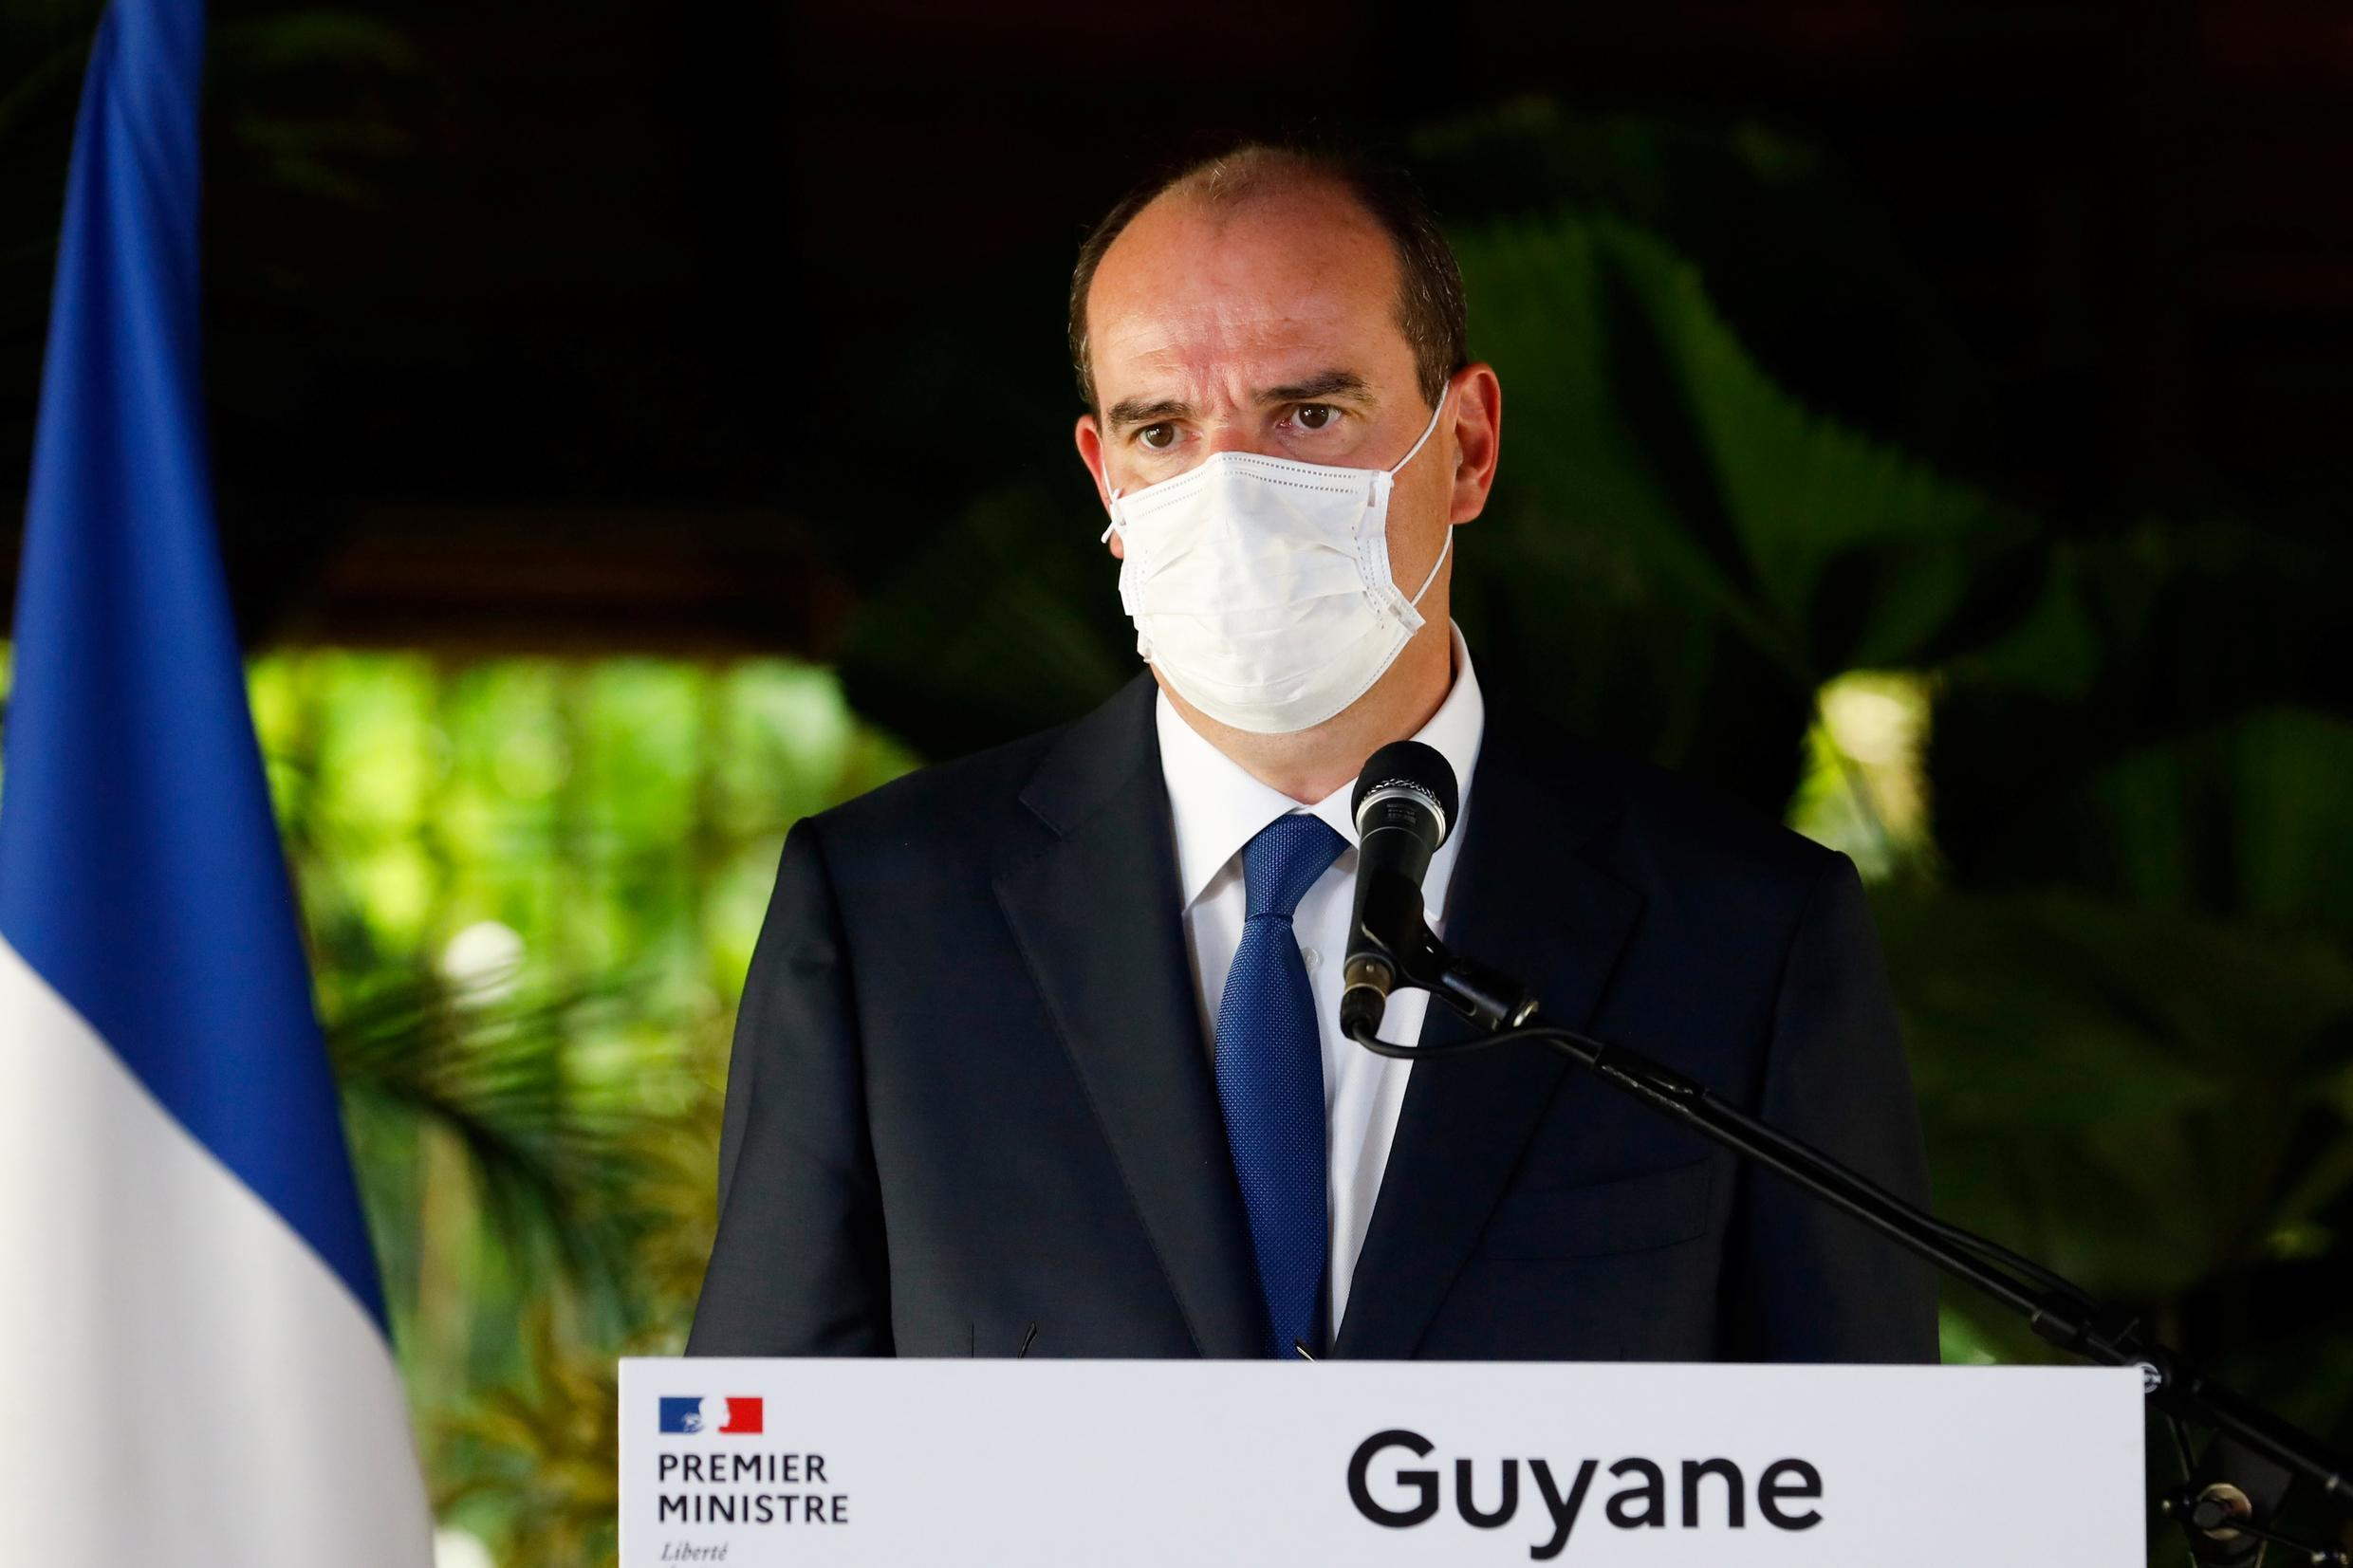 French Prime Minister Jean Castex during a visit to Cayenne, in the French overseas department of Guiana, on July 12, 2020.